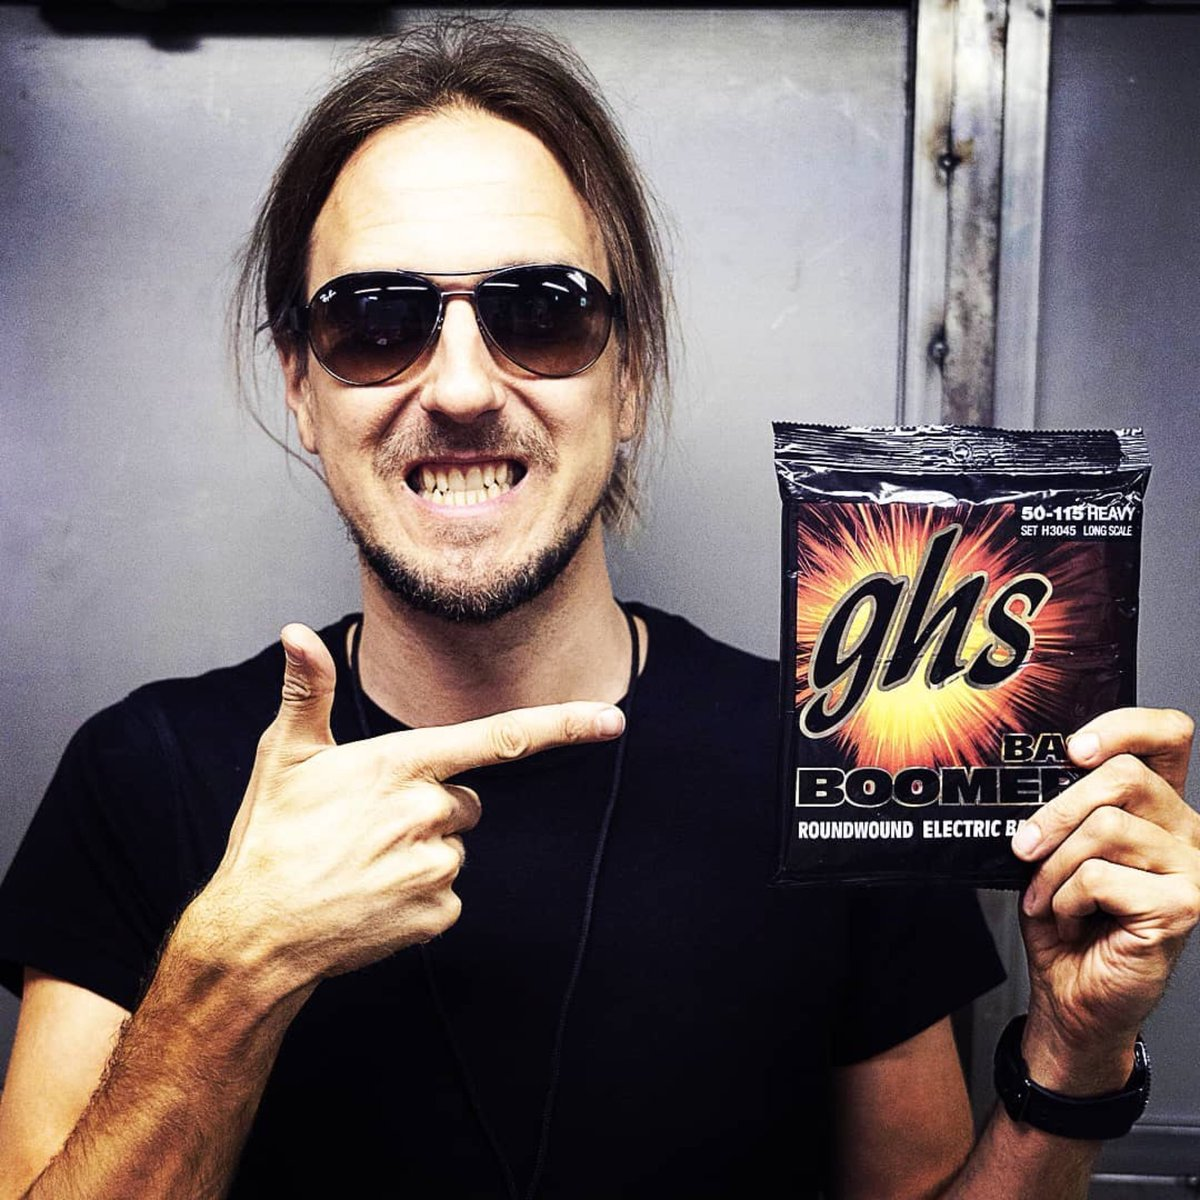 Been playing with @ghsstrings Bass Boomers (50-70-95-115) since 1993. Lookin' fwd for the next 25 yrs!  📷: Mikiko Ariga  #ghs #ghsstrings #bassboomers #amorphis #ollipekkalaine https://t.co/dBEZVASCO6